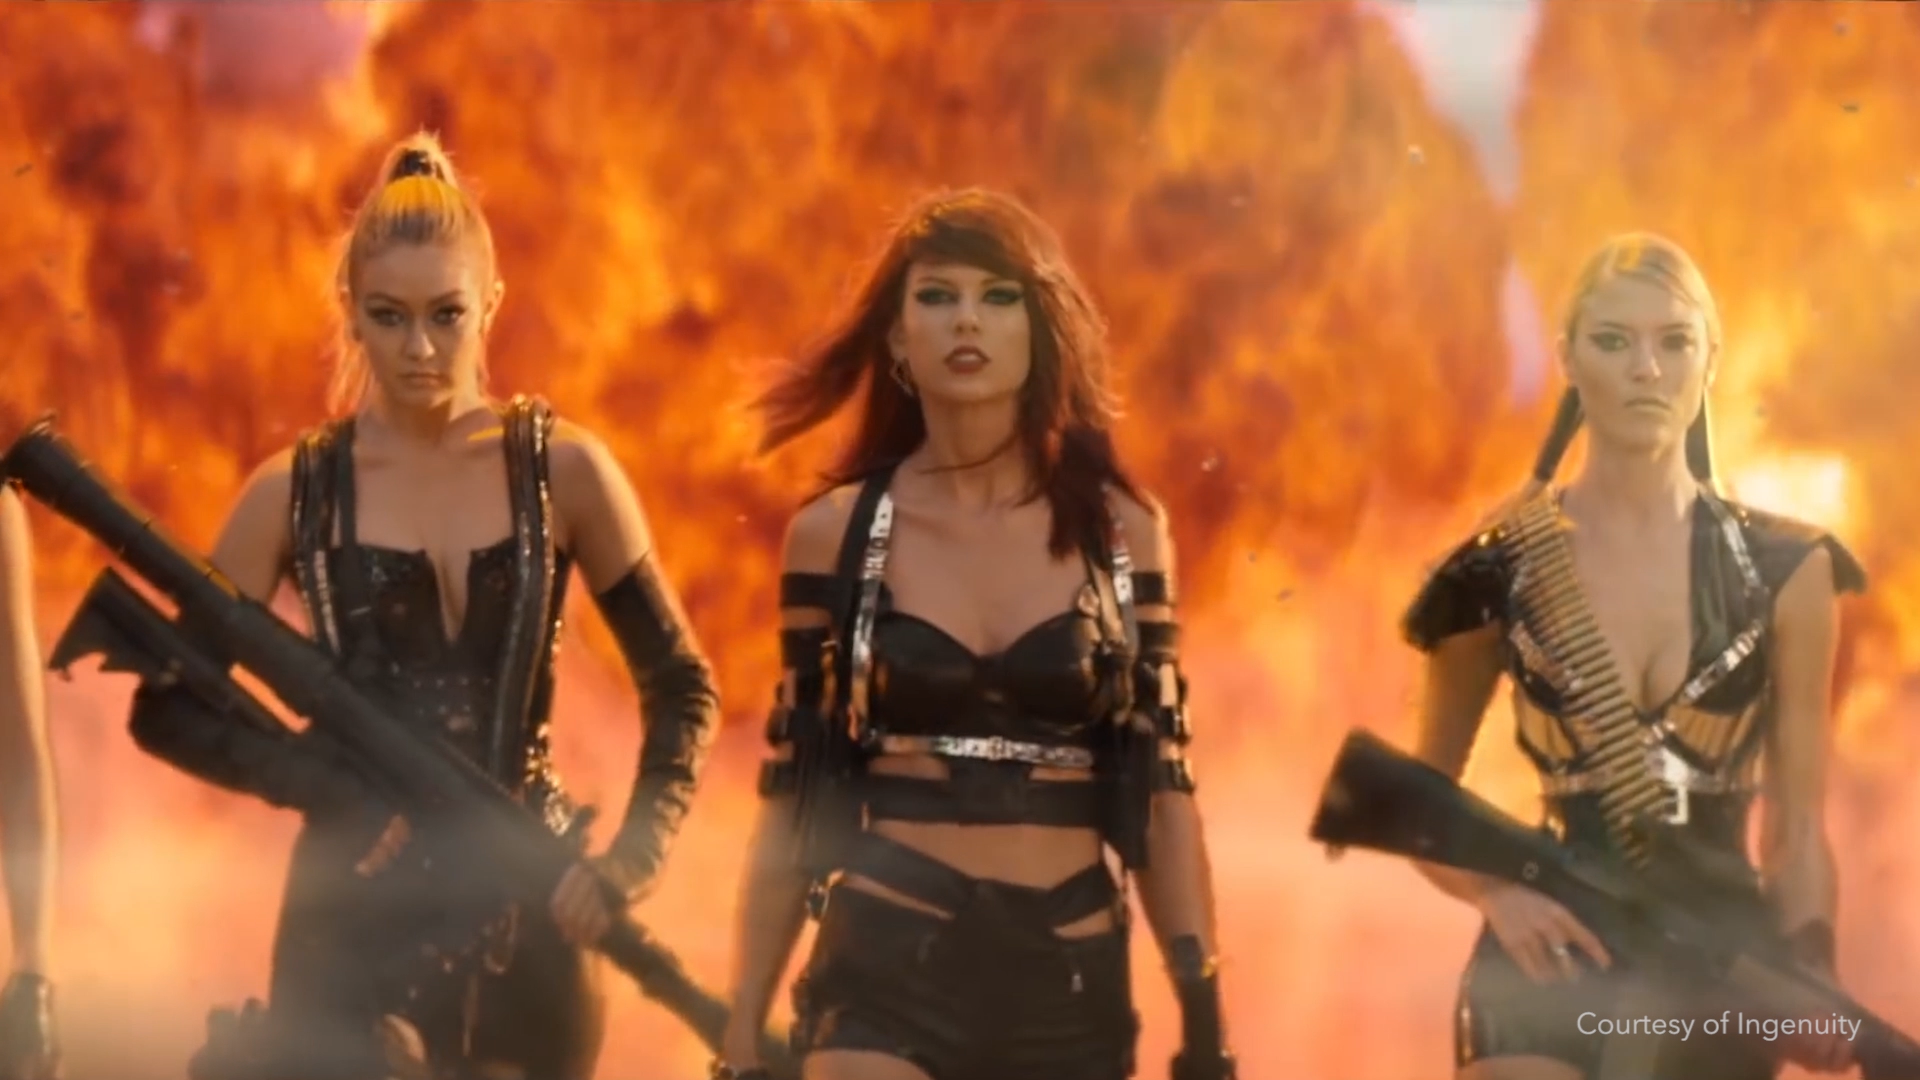 Fast 3D modeling software used for Taylor Swift's Bad Blood music video